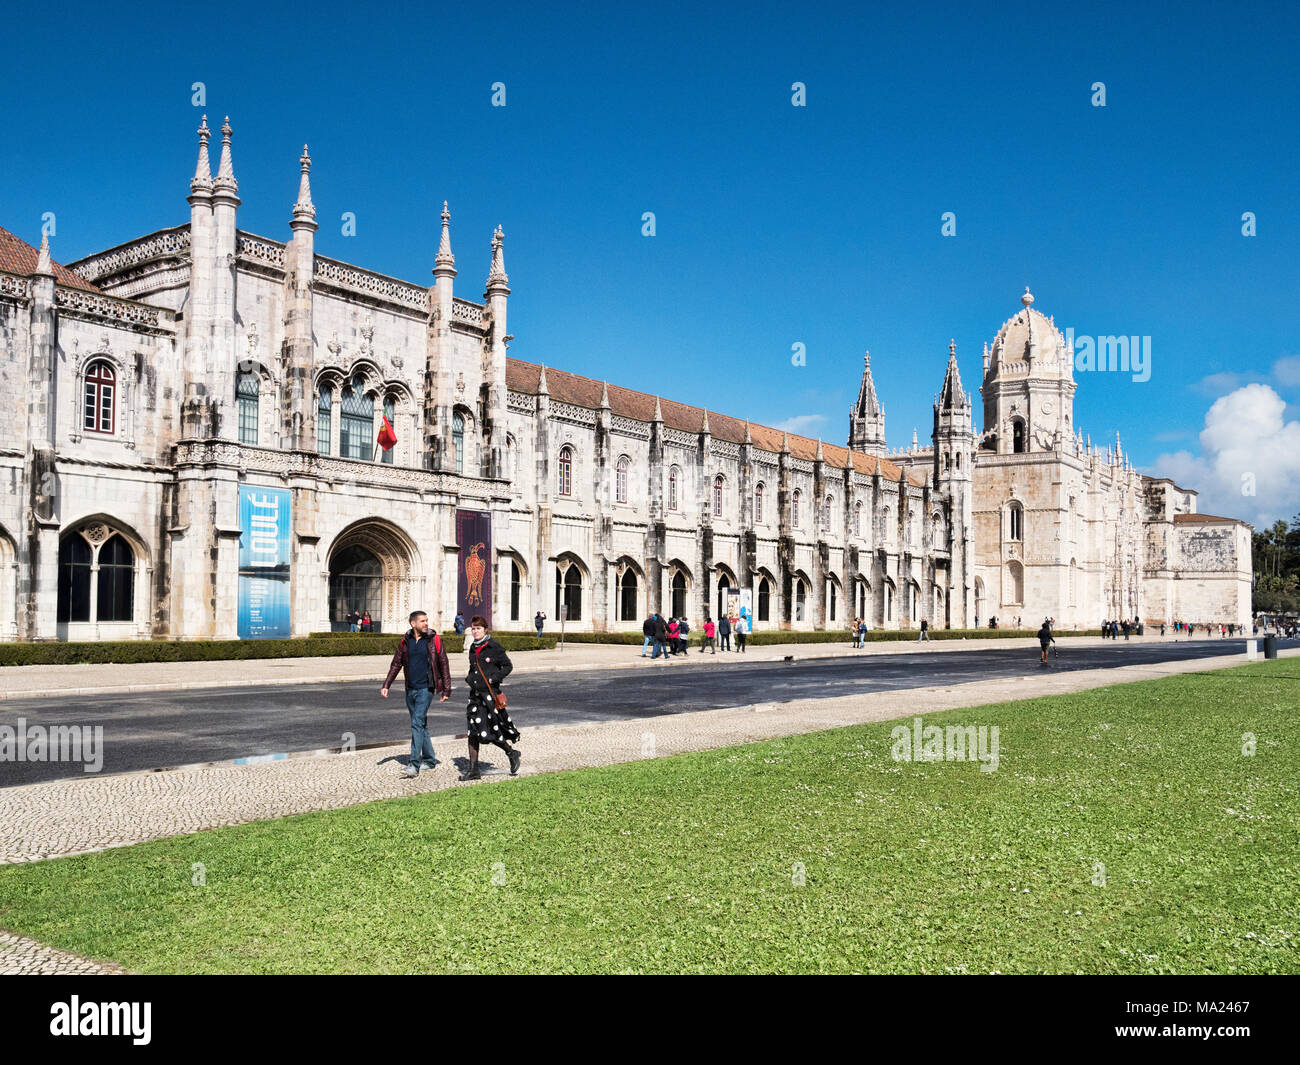 5 March 2018: Lisbon, Portugal - Tourists enjoying early spring sunshine at  Monastery of Jeronimos, Belem. - Stock Image